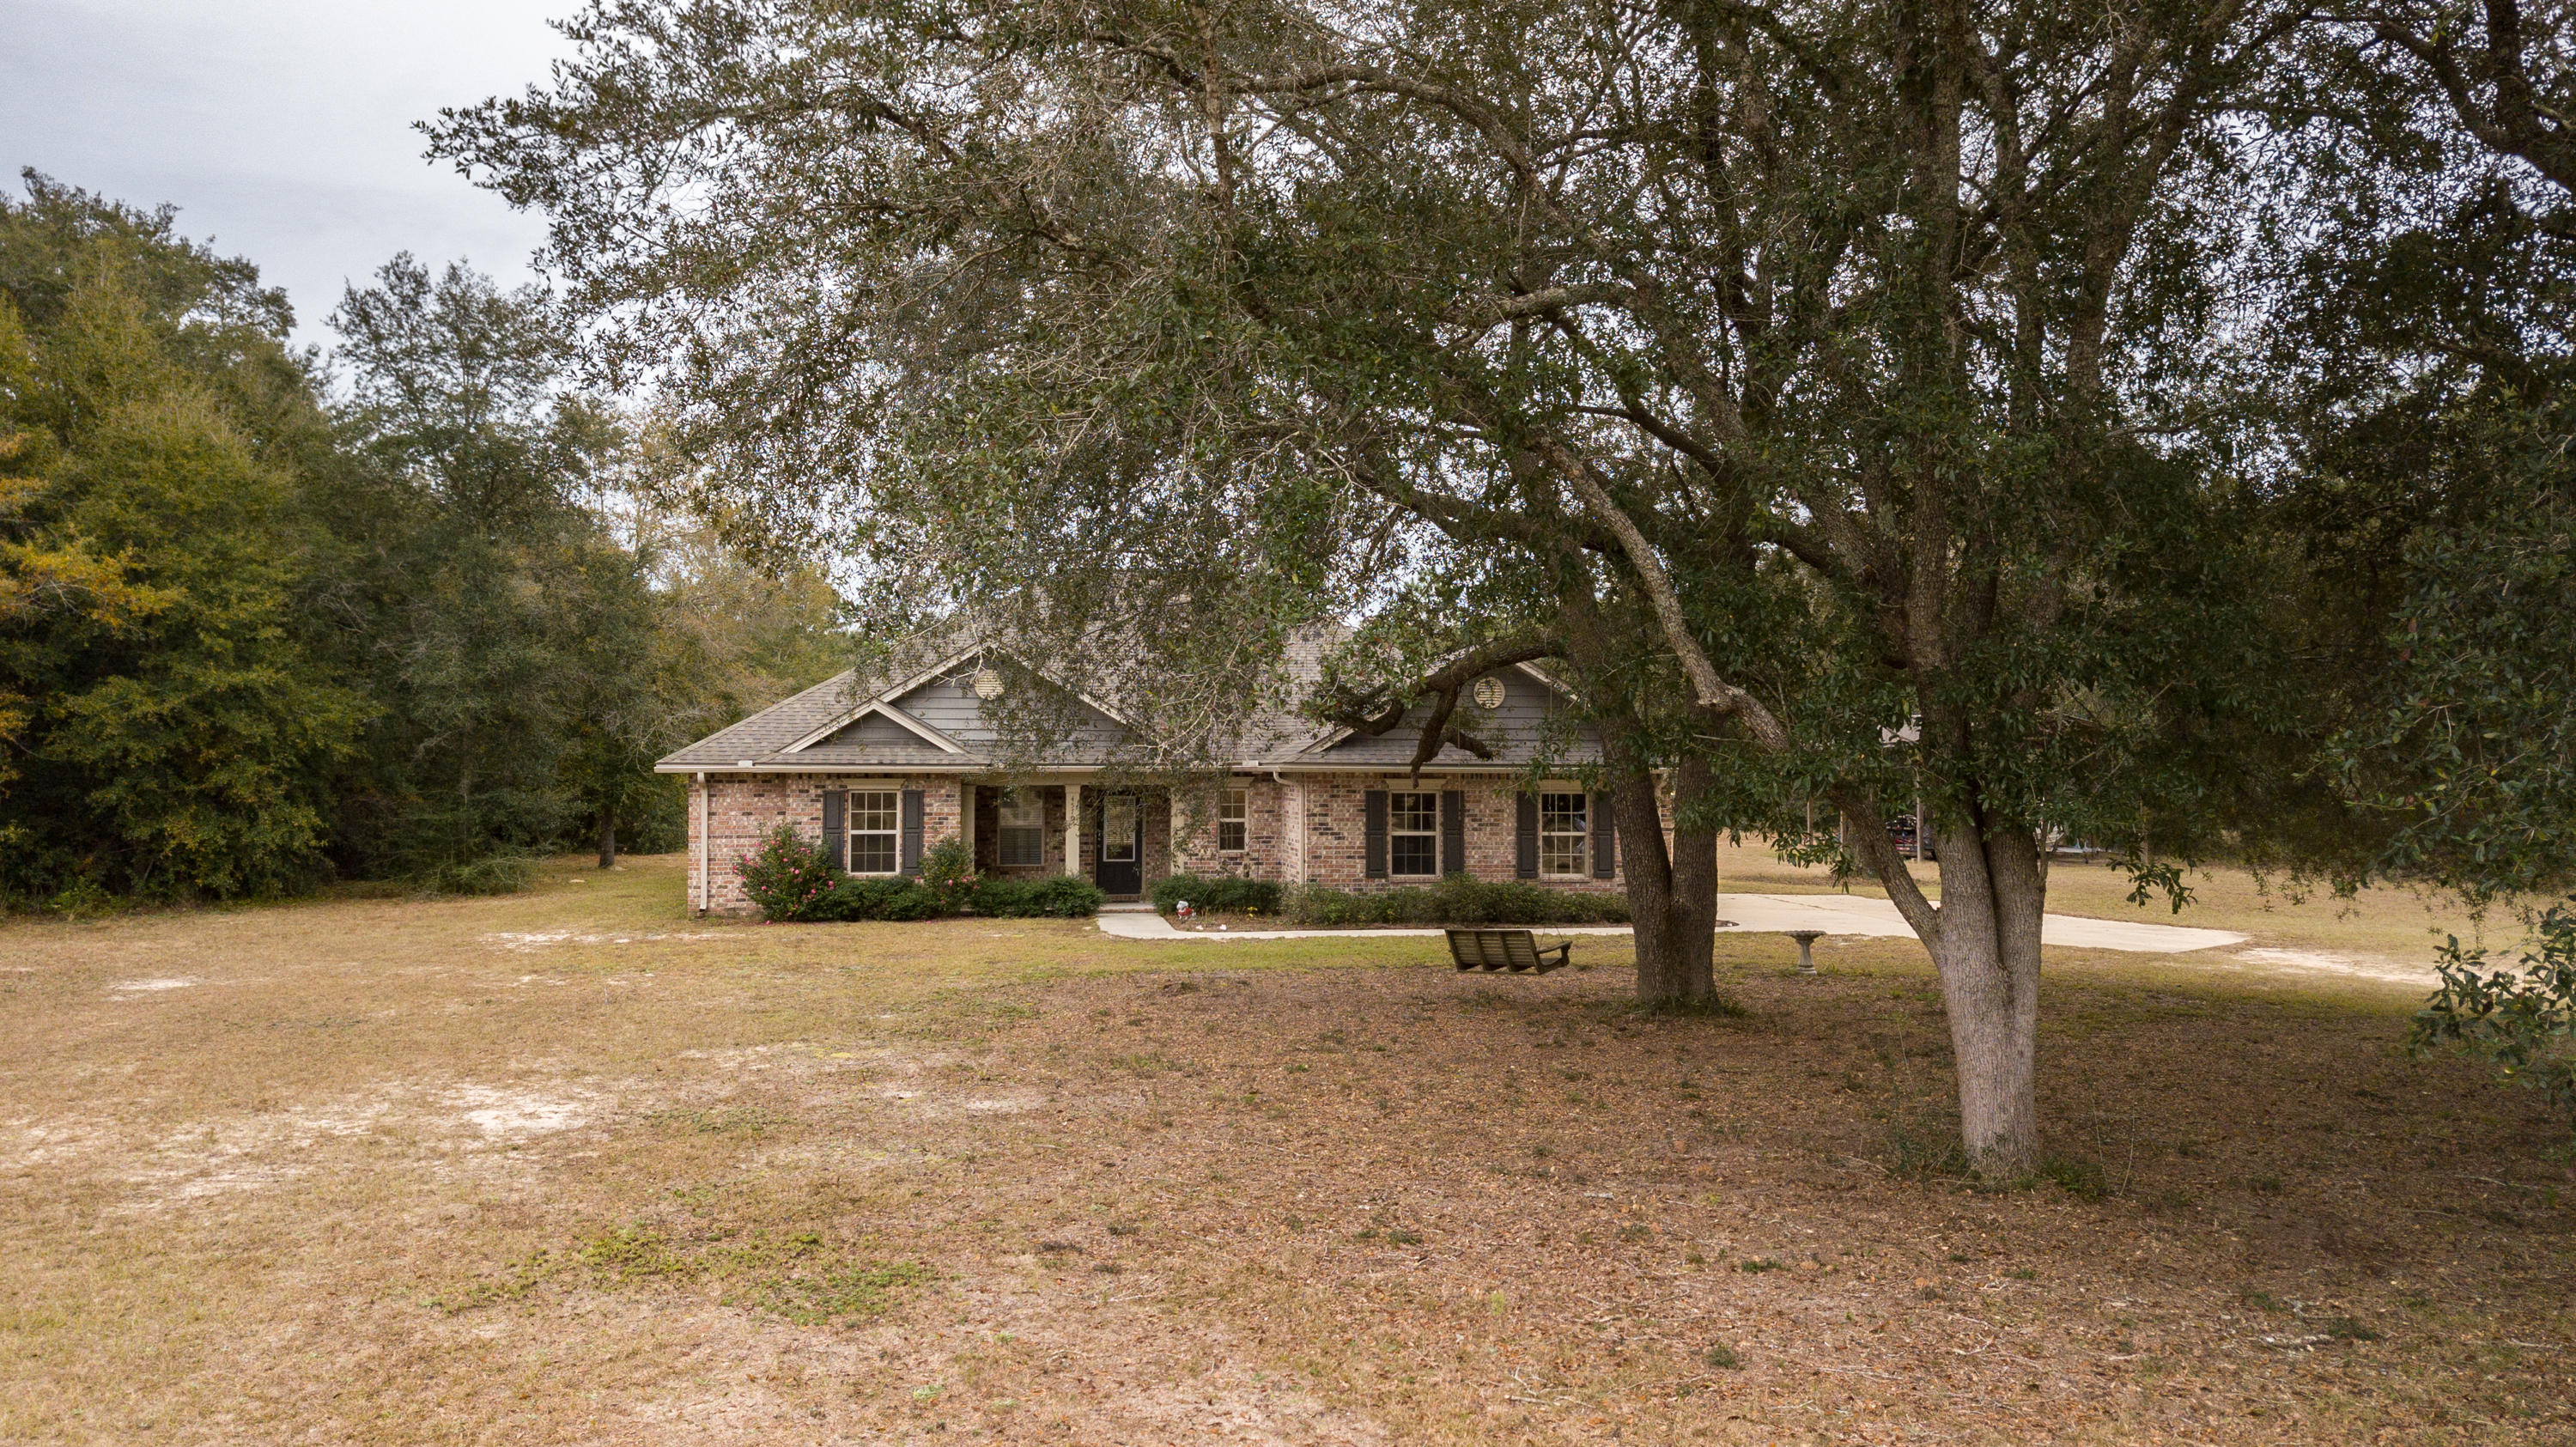 Photo of home for sale at 4570 Wilkerson Bluff, Holt FL